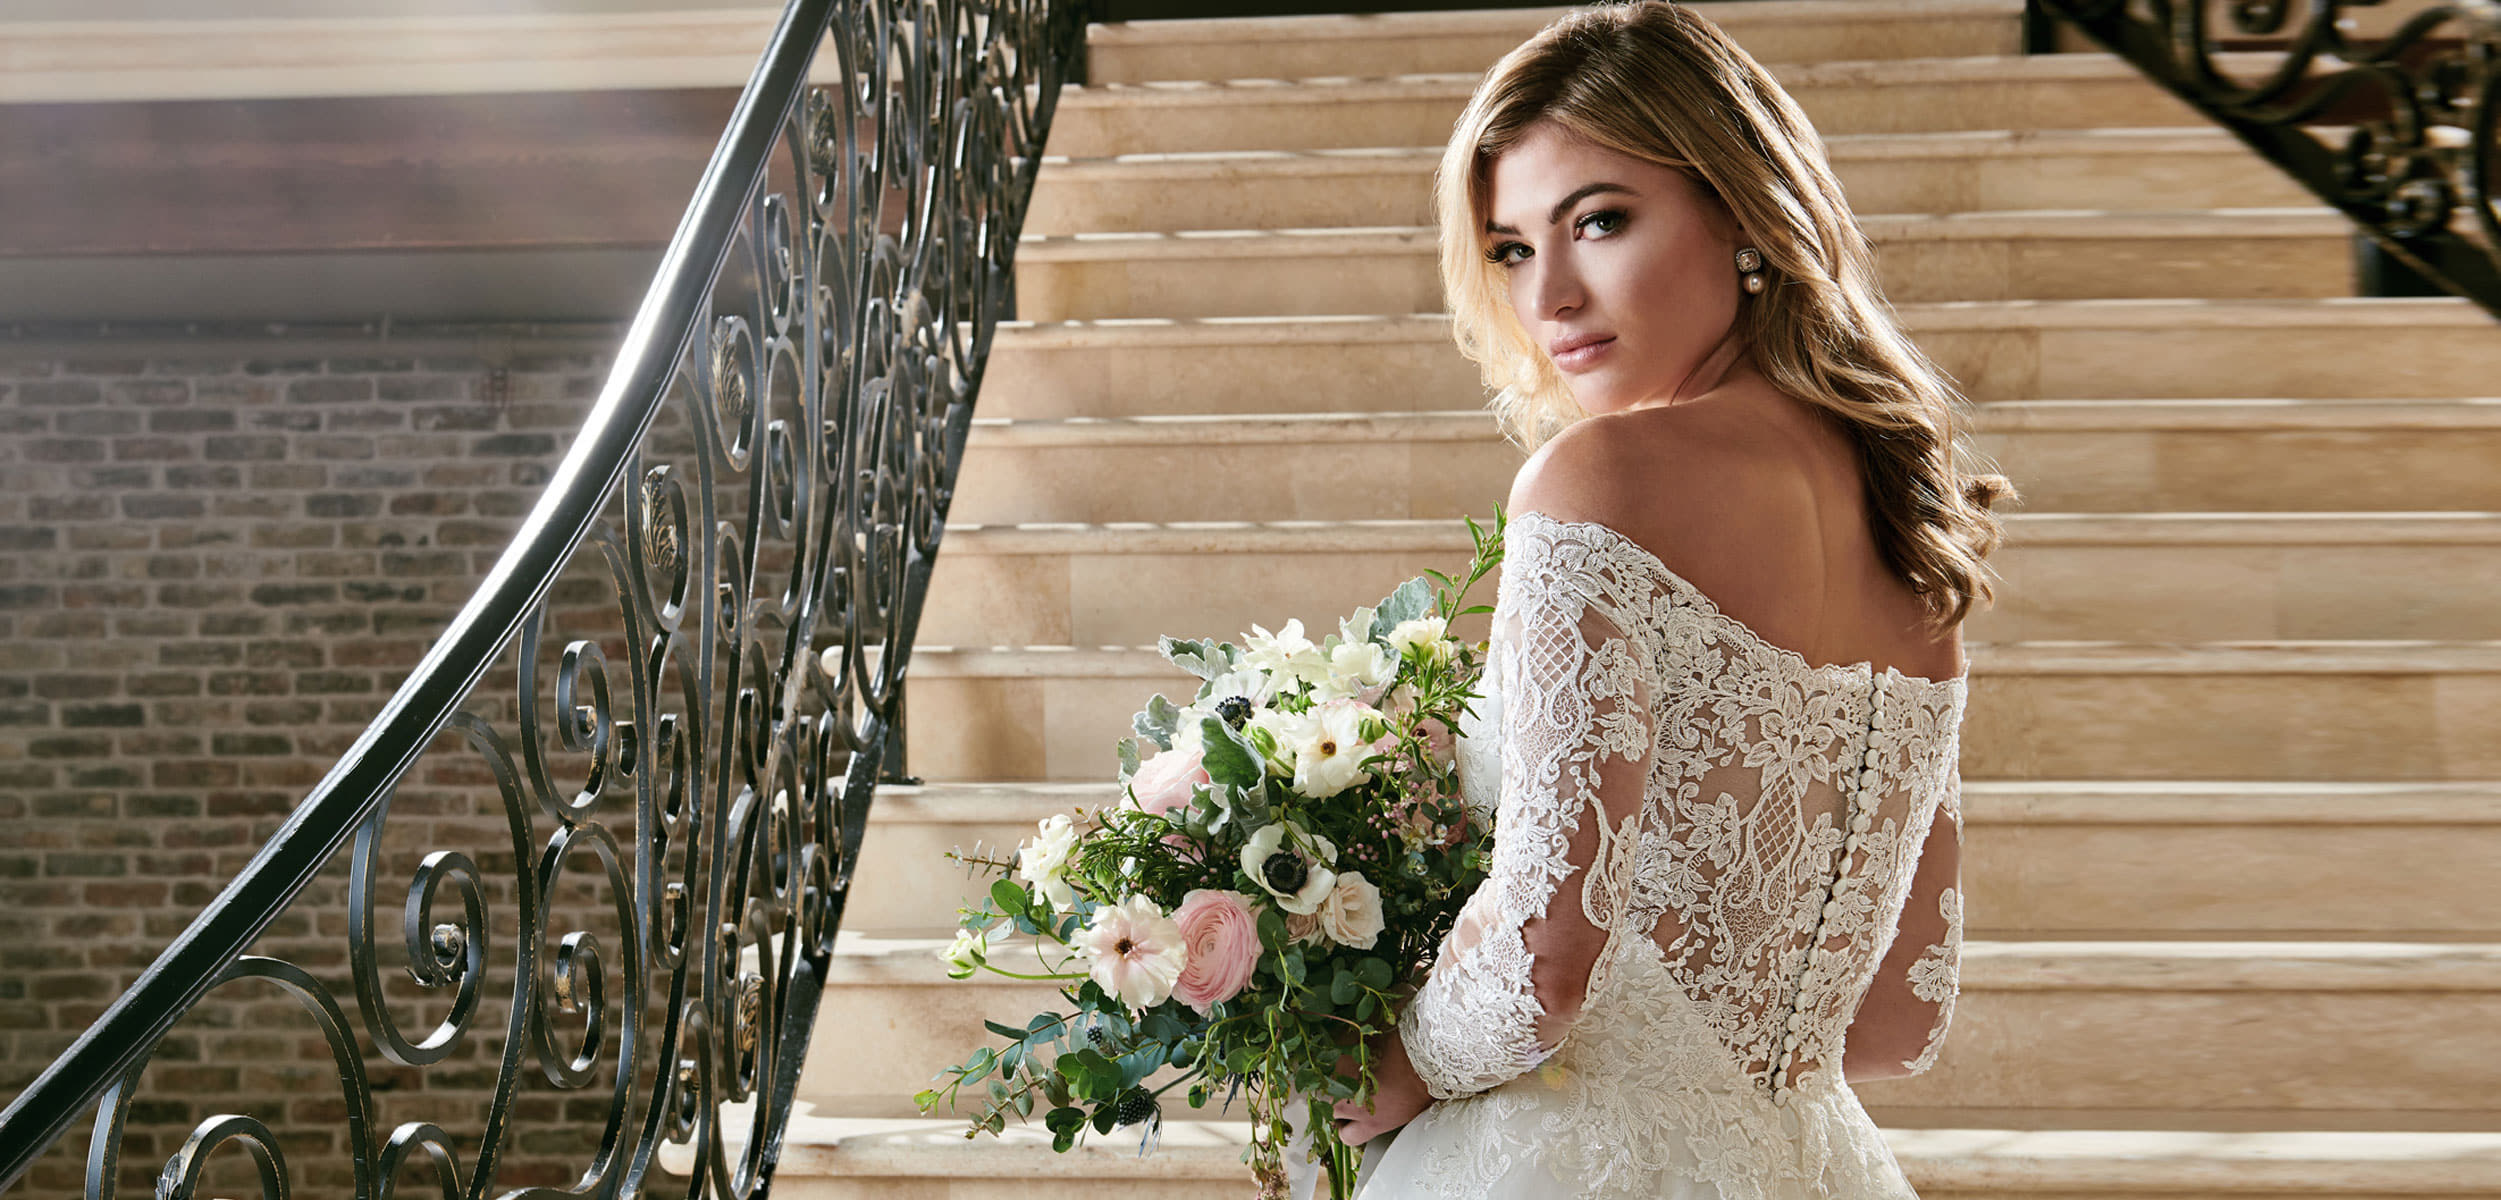 f16a1a16f5b6f5 Marys Bridal - The Official Site of Marys Bridal